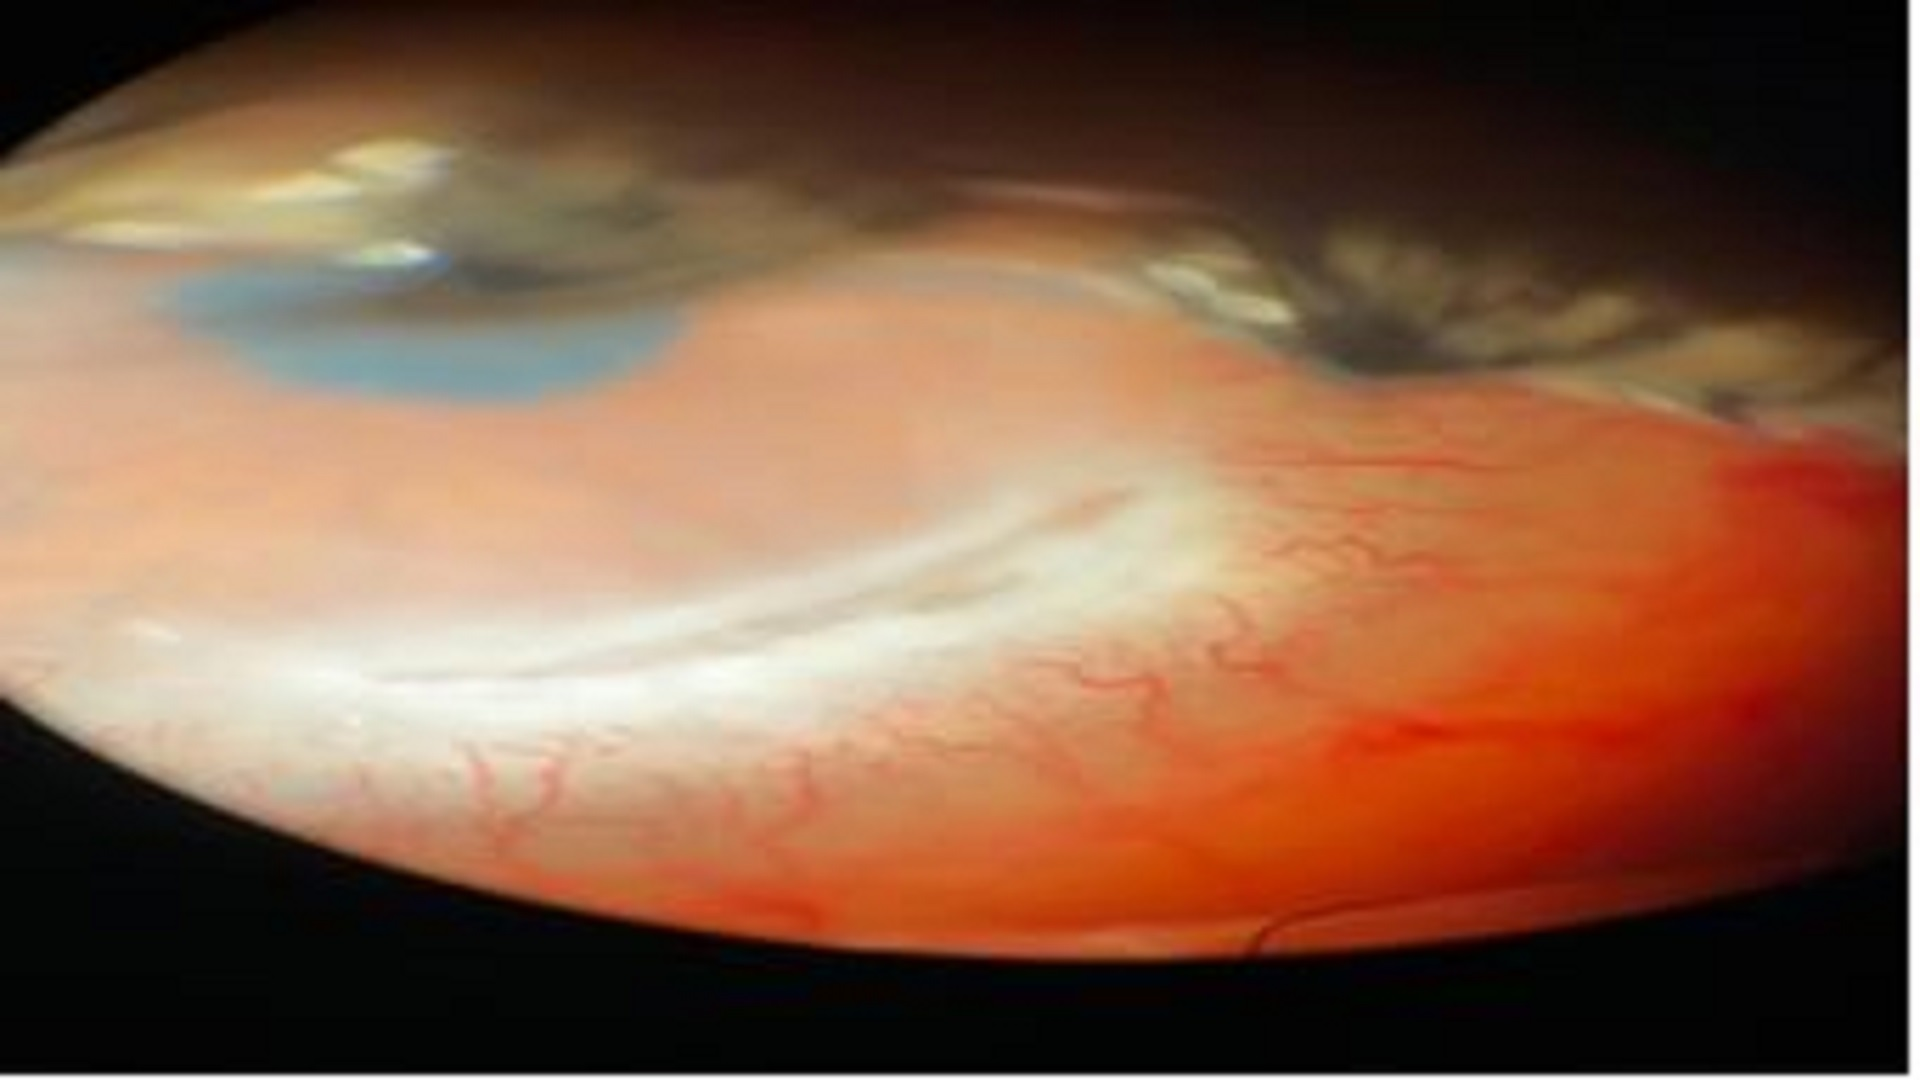 Conjunctival Resection for Peripheral Ulcerative Keratitis